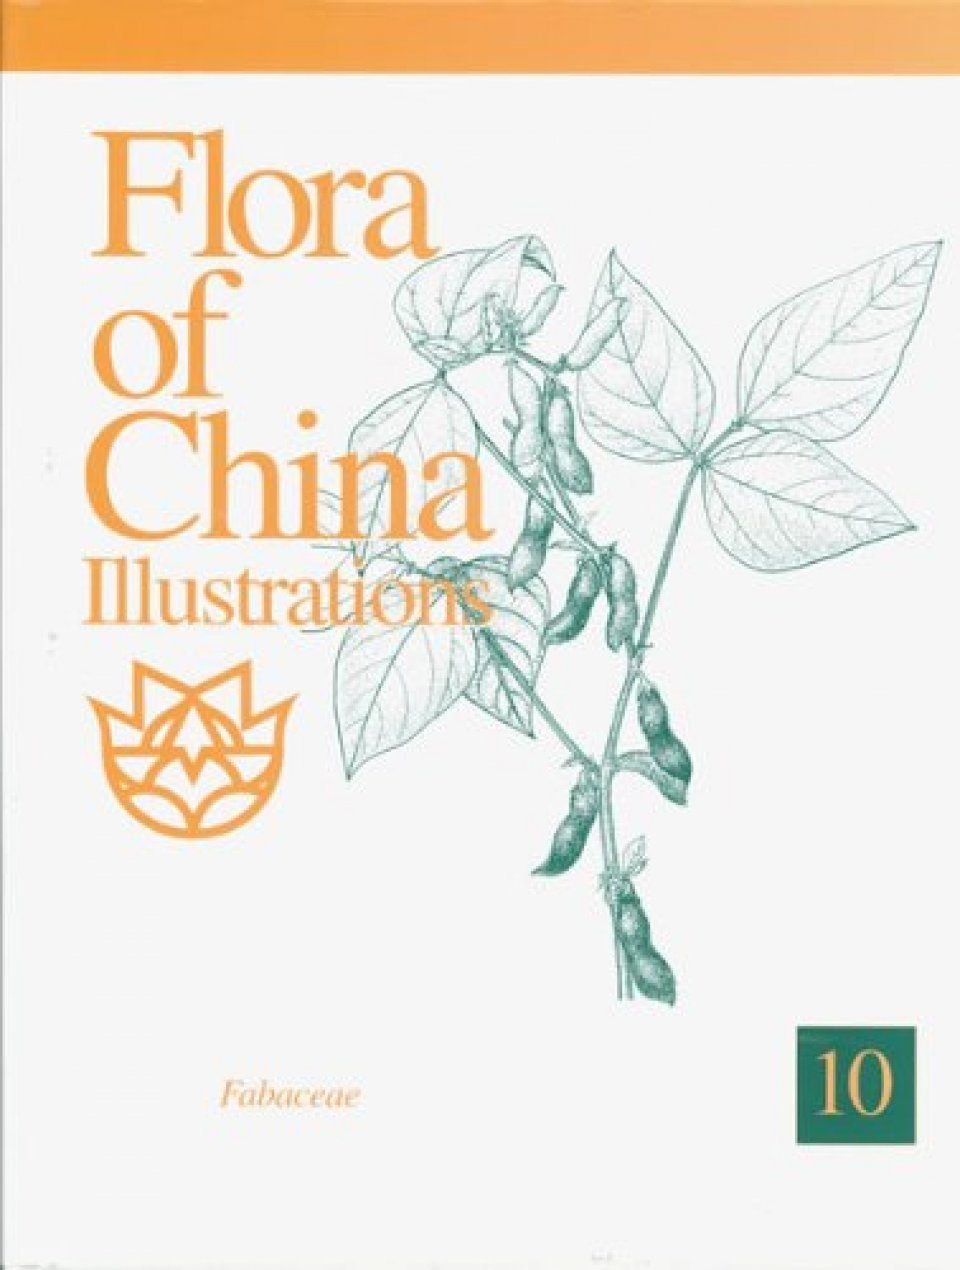 Flora of China Illustrations, Volume 10